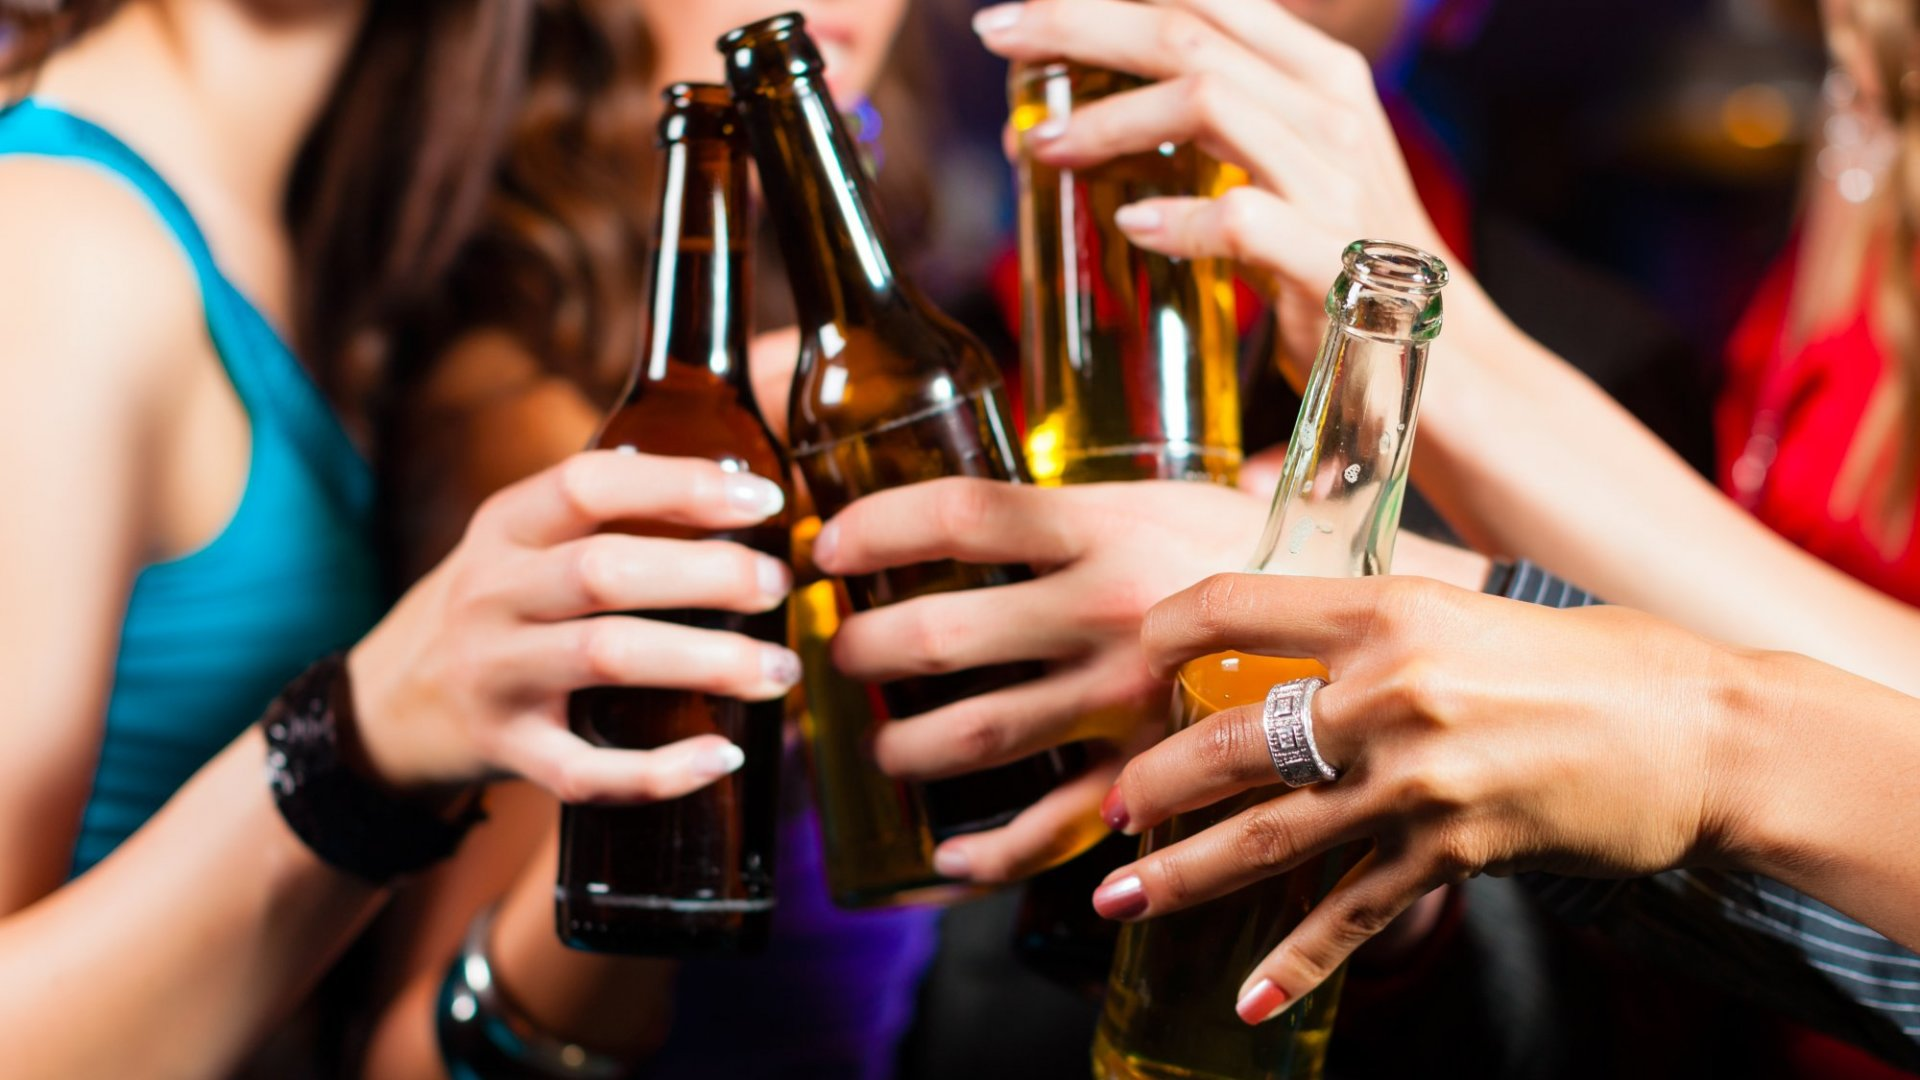 Posting a Picture of You Drinking a Beer No Longer Hurts Your Career, But This Could